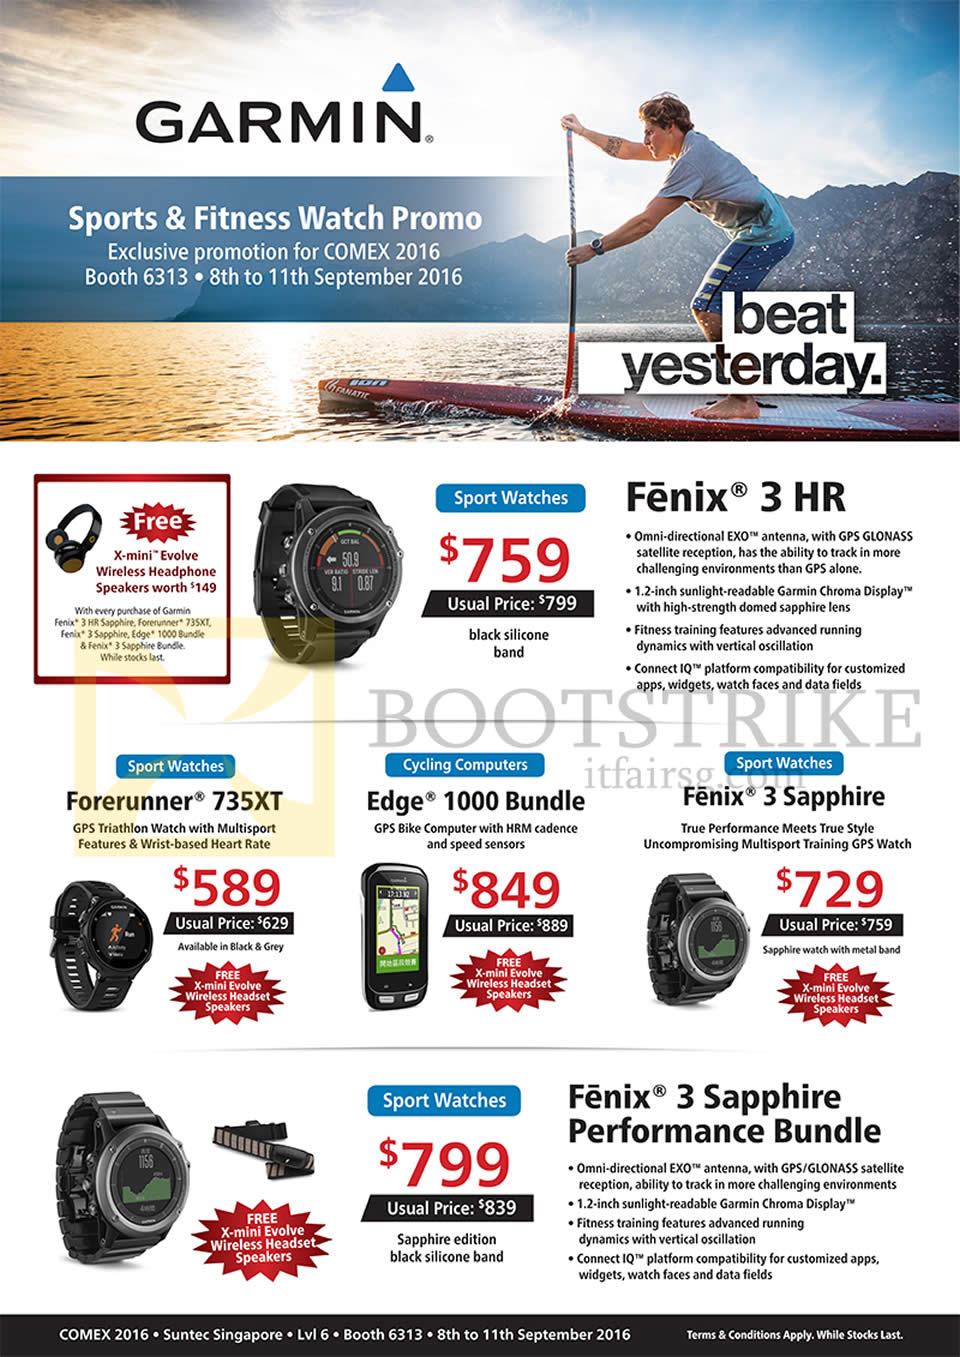 COMEX 2016 price list image brochure of Convergent Garmin GPS Activity Trackers, Watches, Fenix 3 HR, 3 Sapphire, Edge 1000 Bundle, ForeRunner 735XT